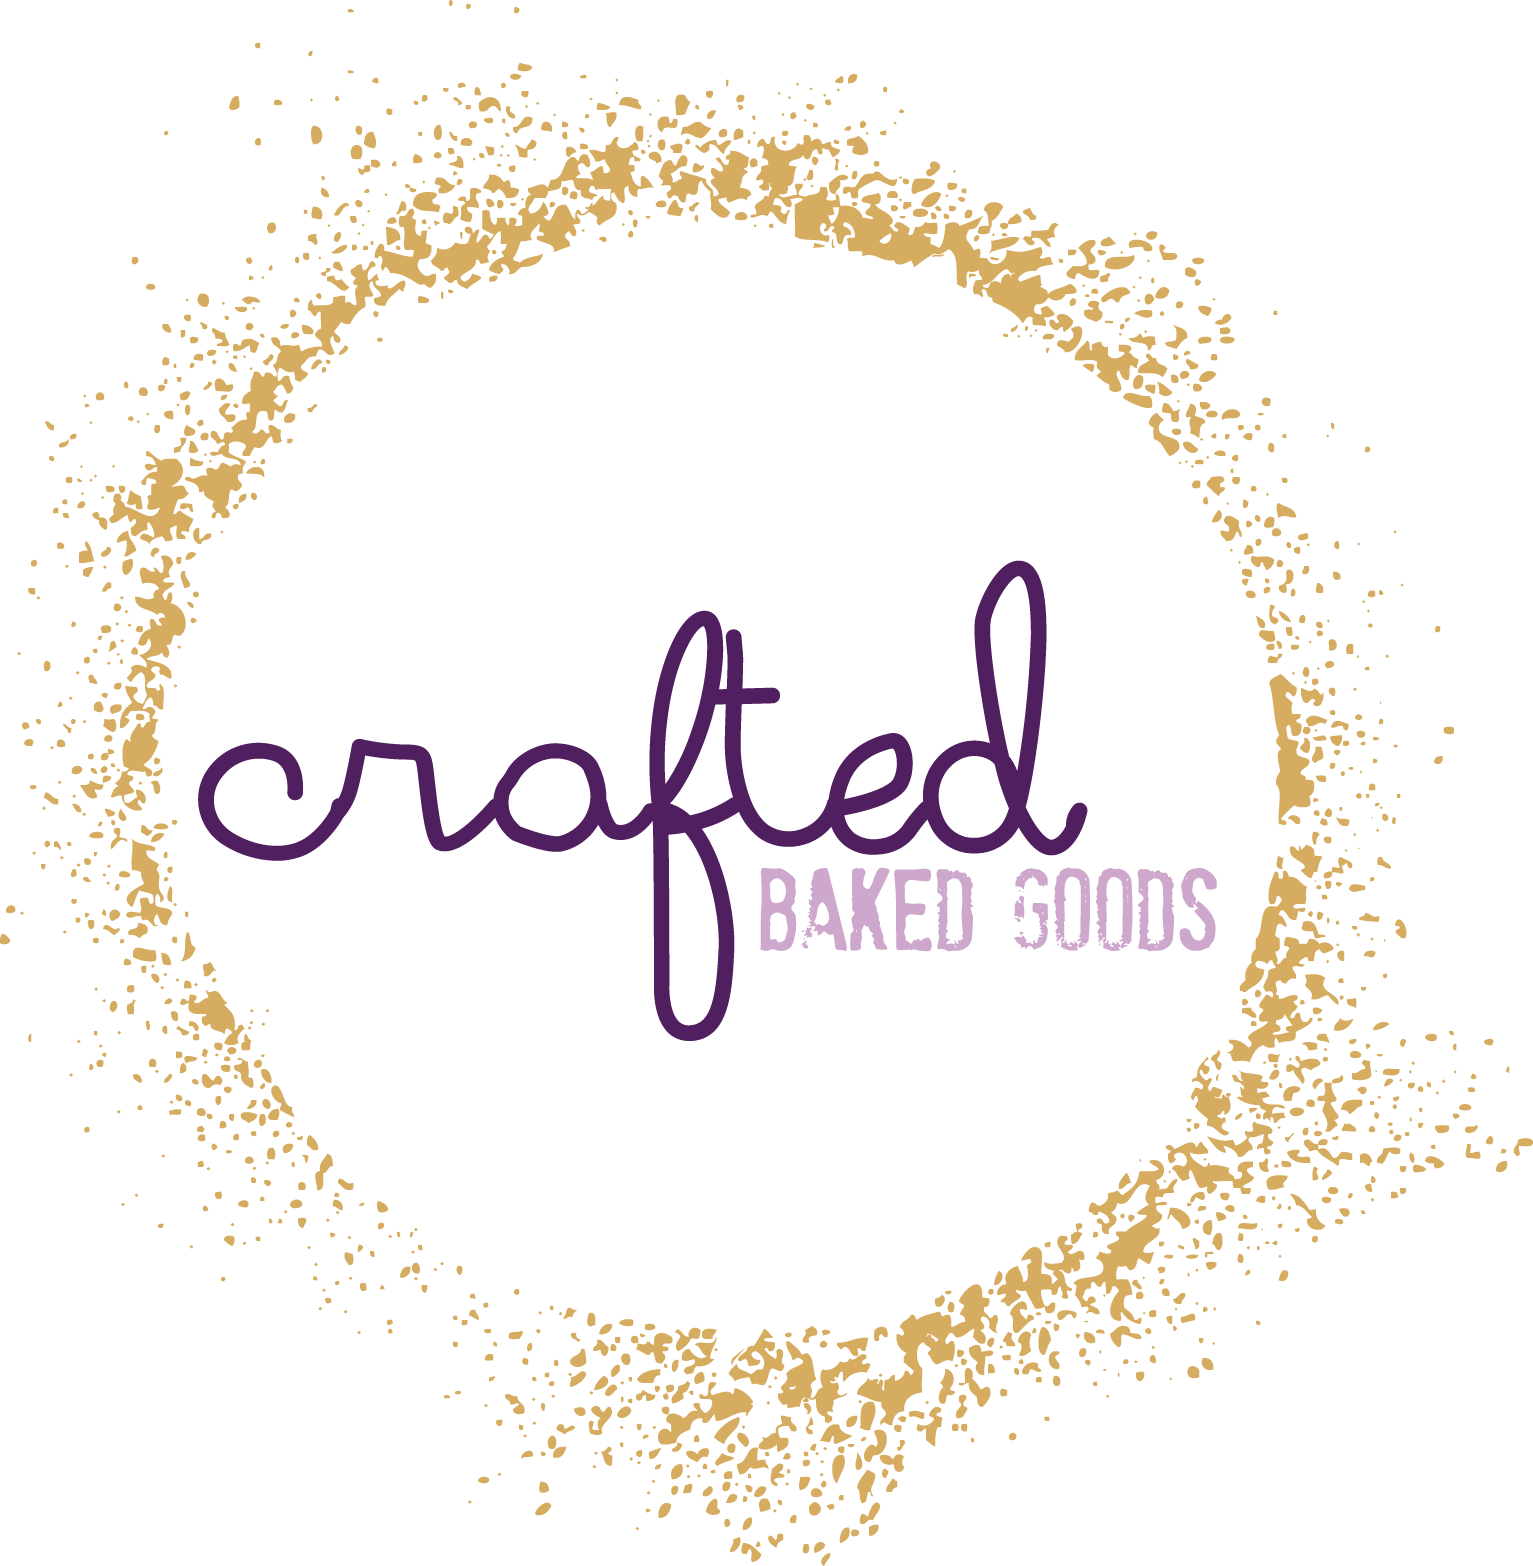 Crafted Baked Goods